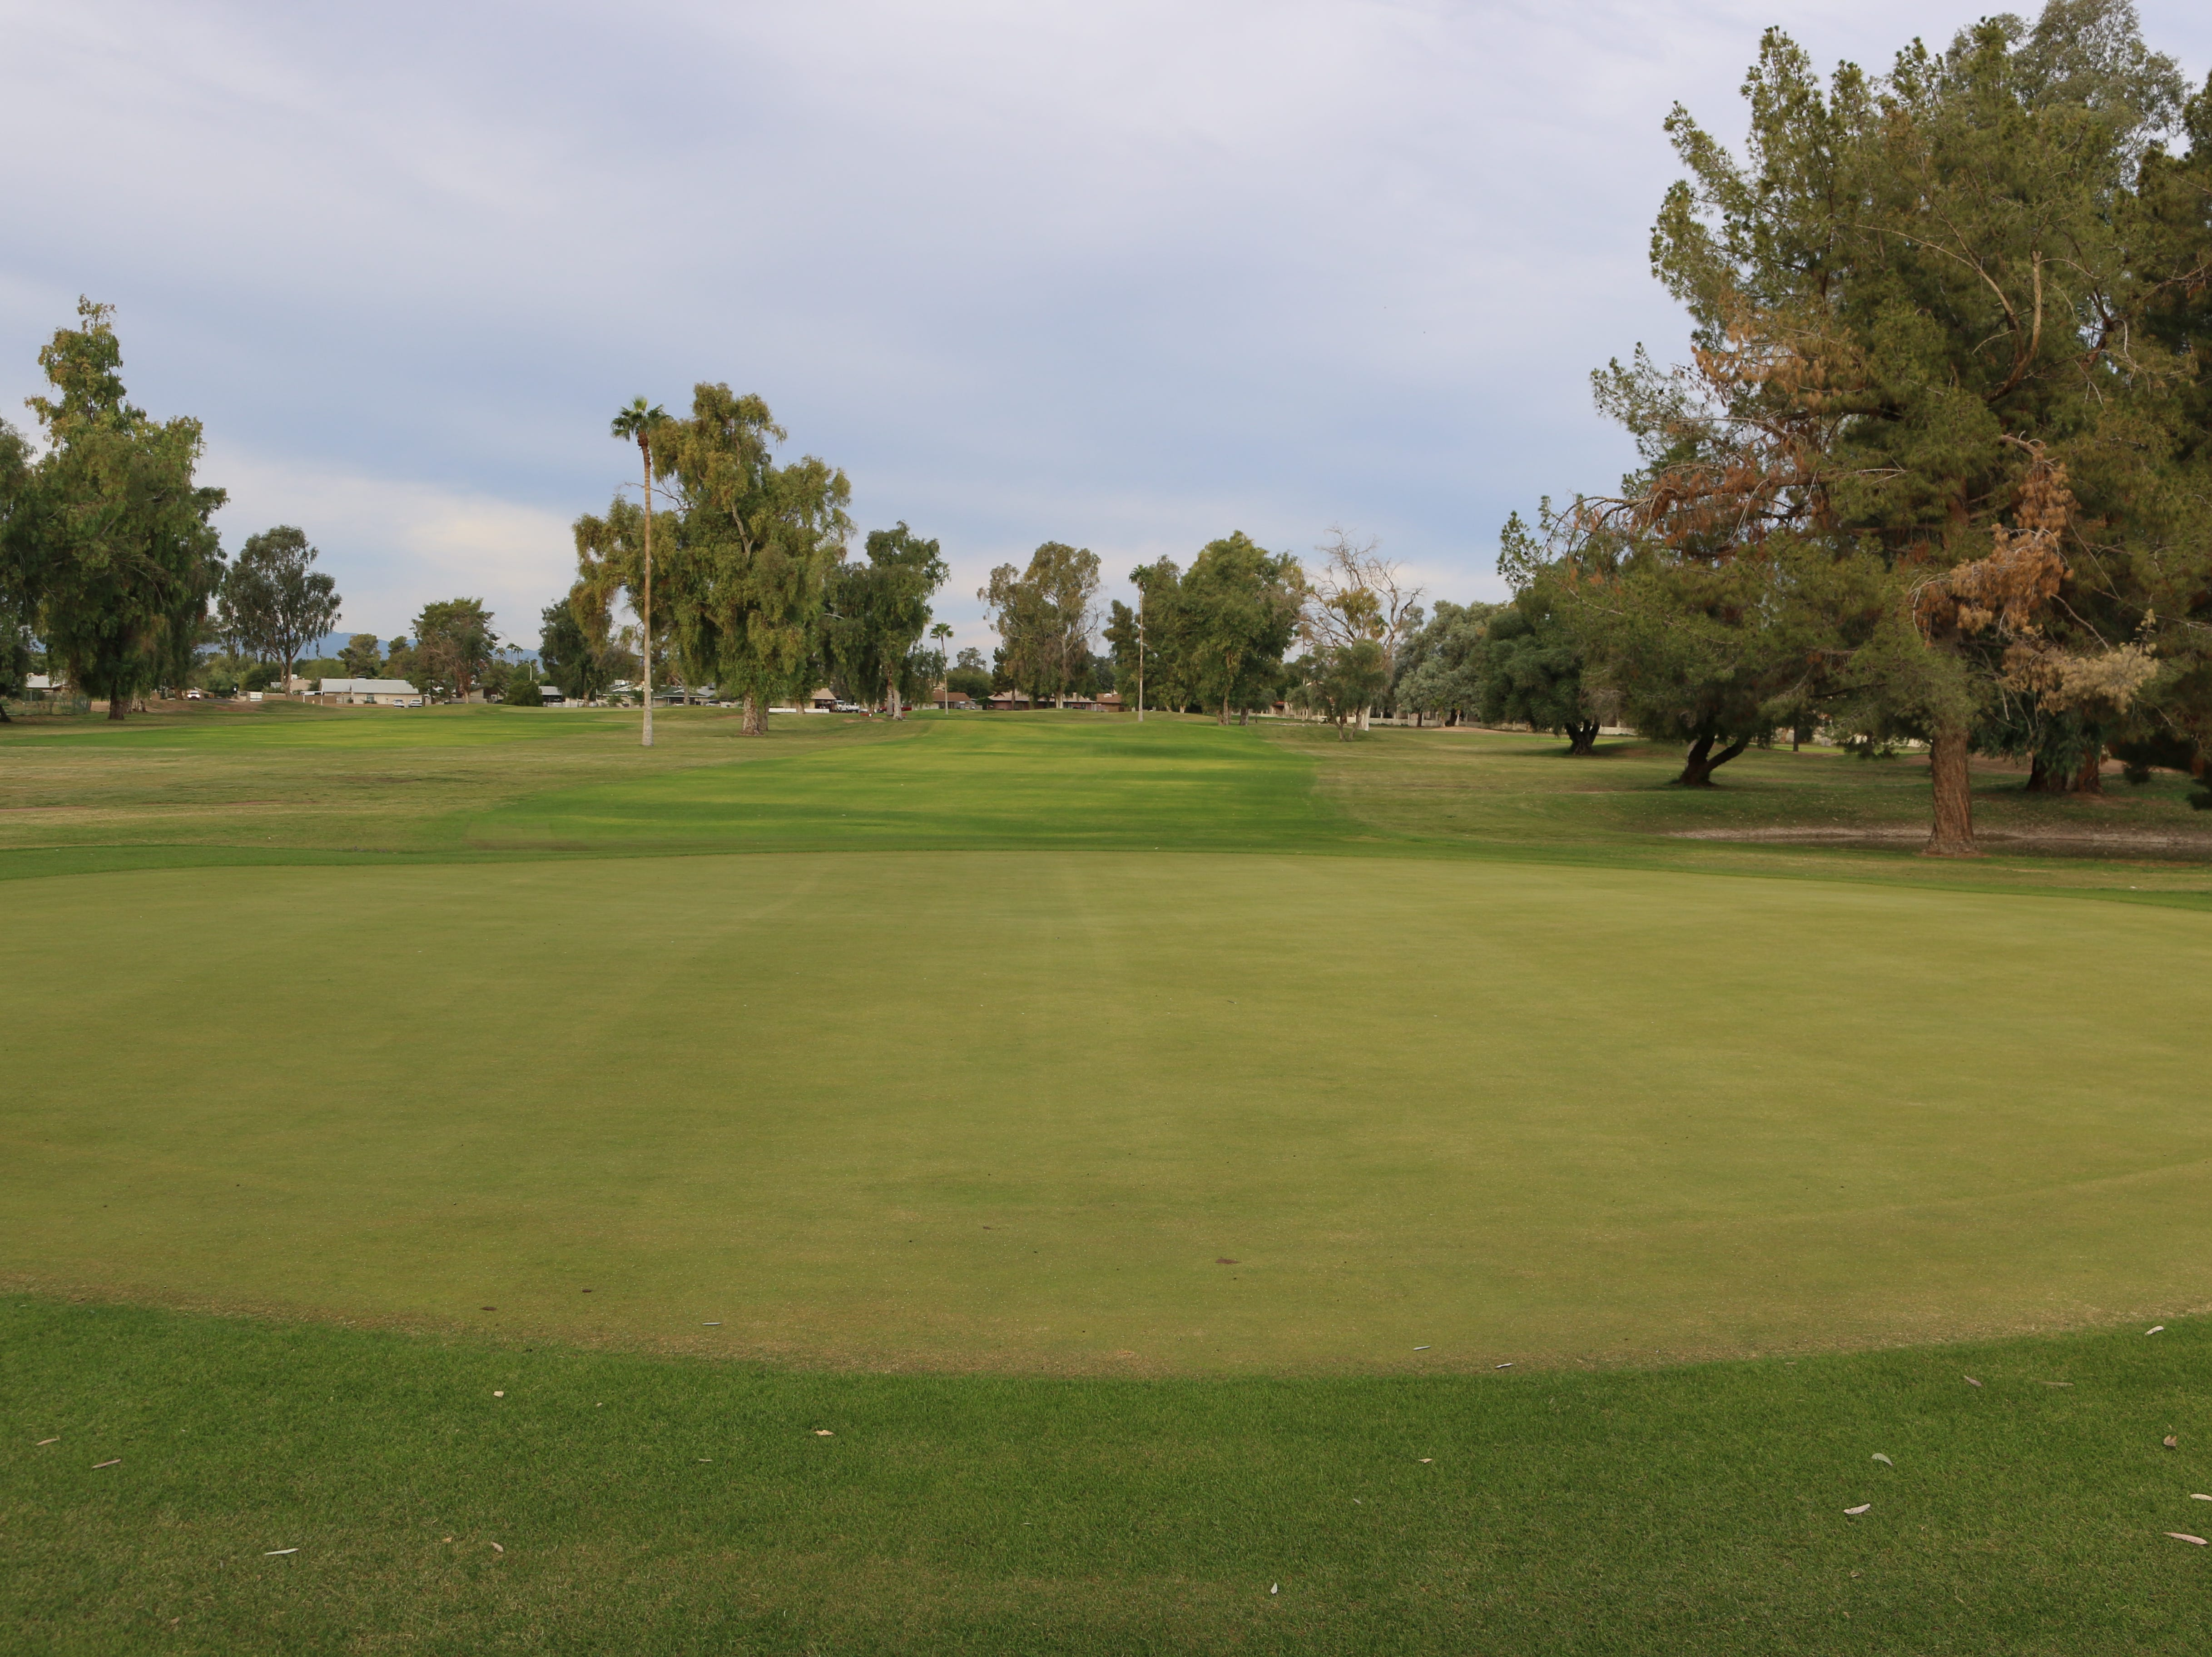 Course improvements have been made at Glen Lakes Golf Course in Glendale in the last year, but the course buildings are in bad shape.